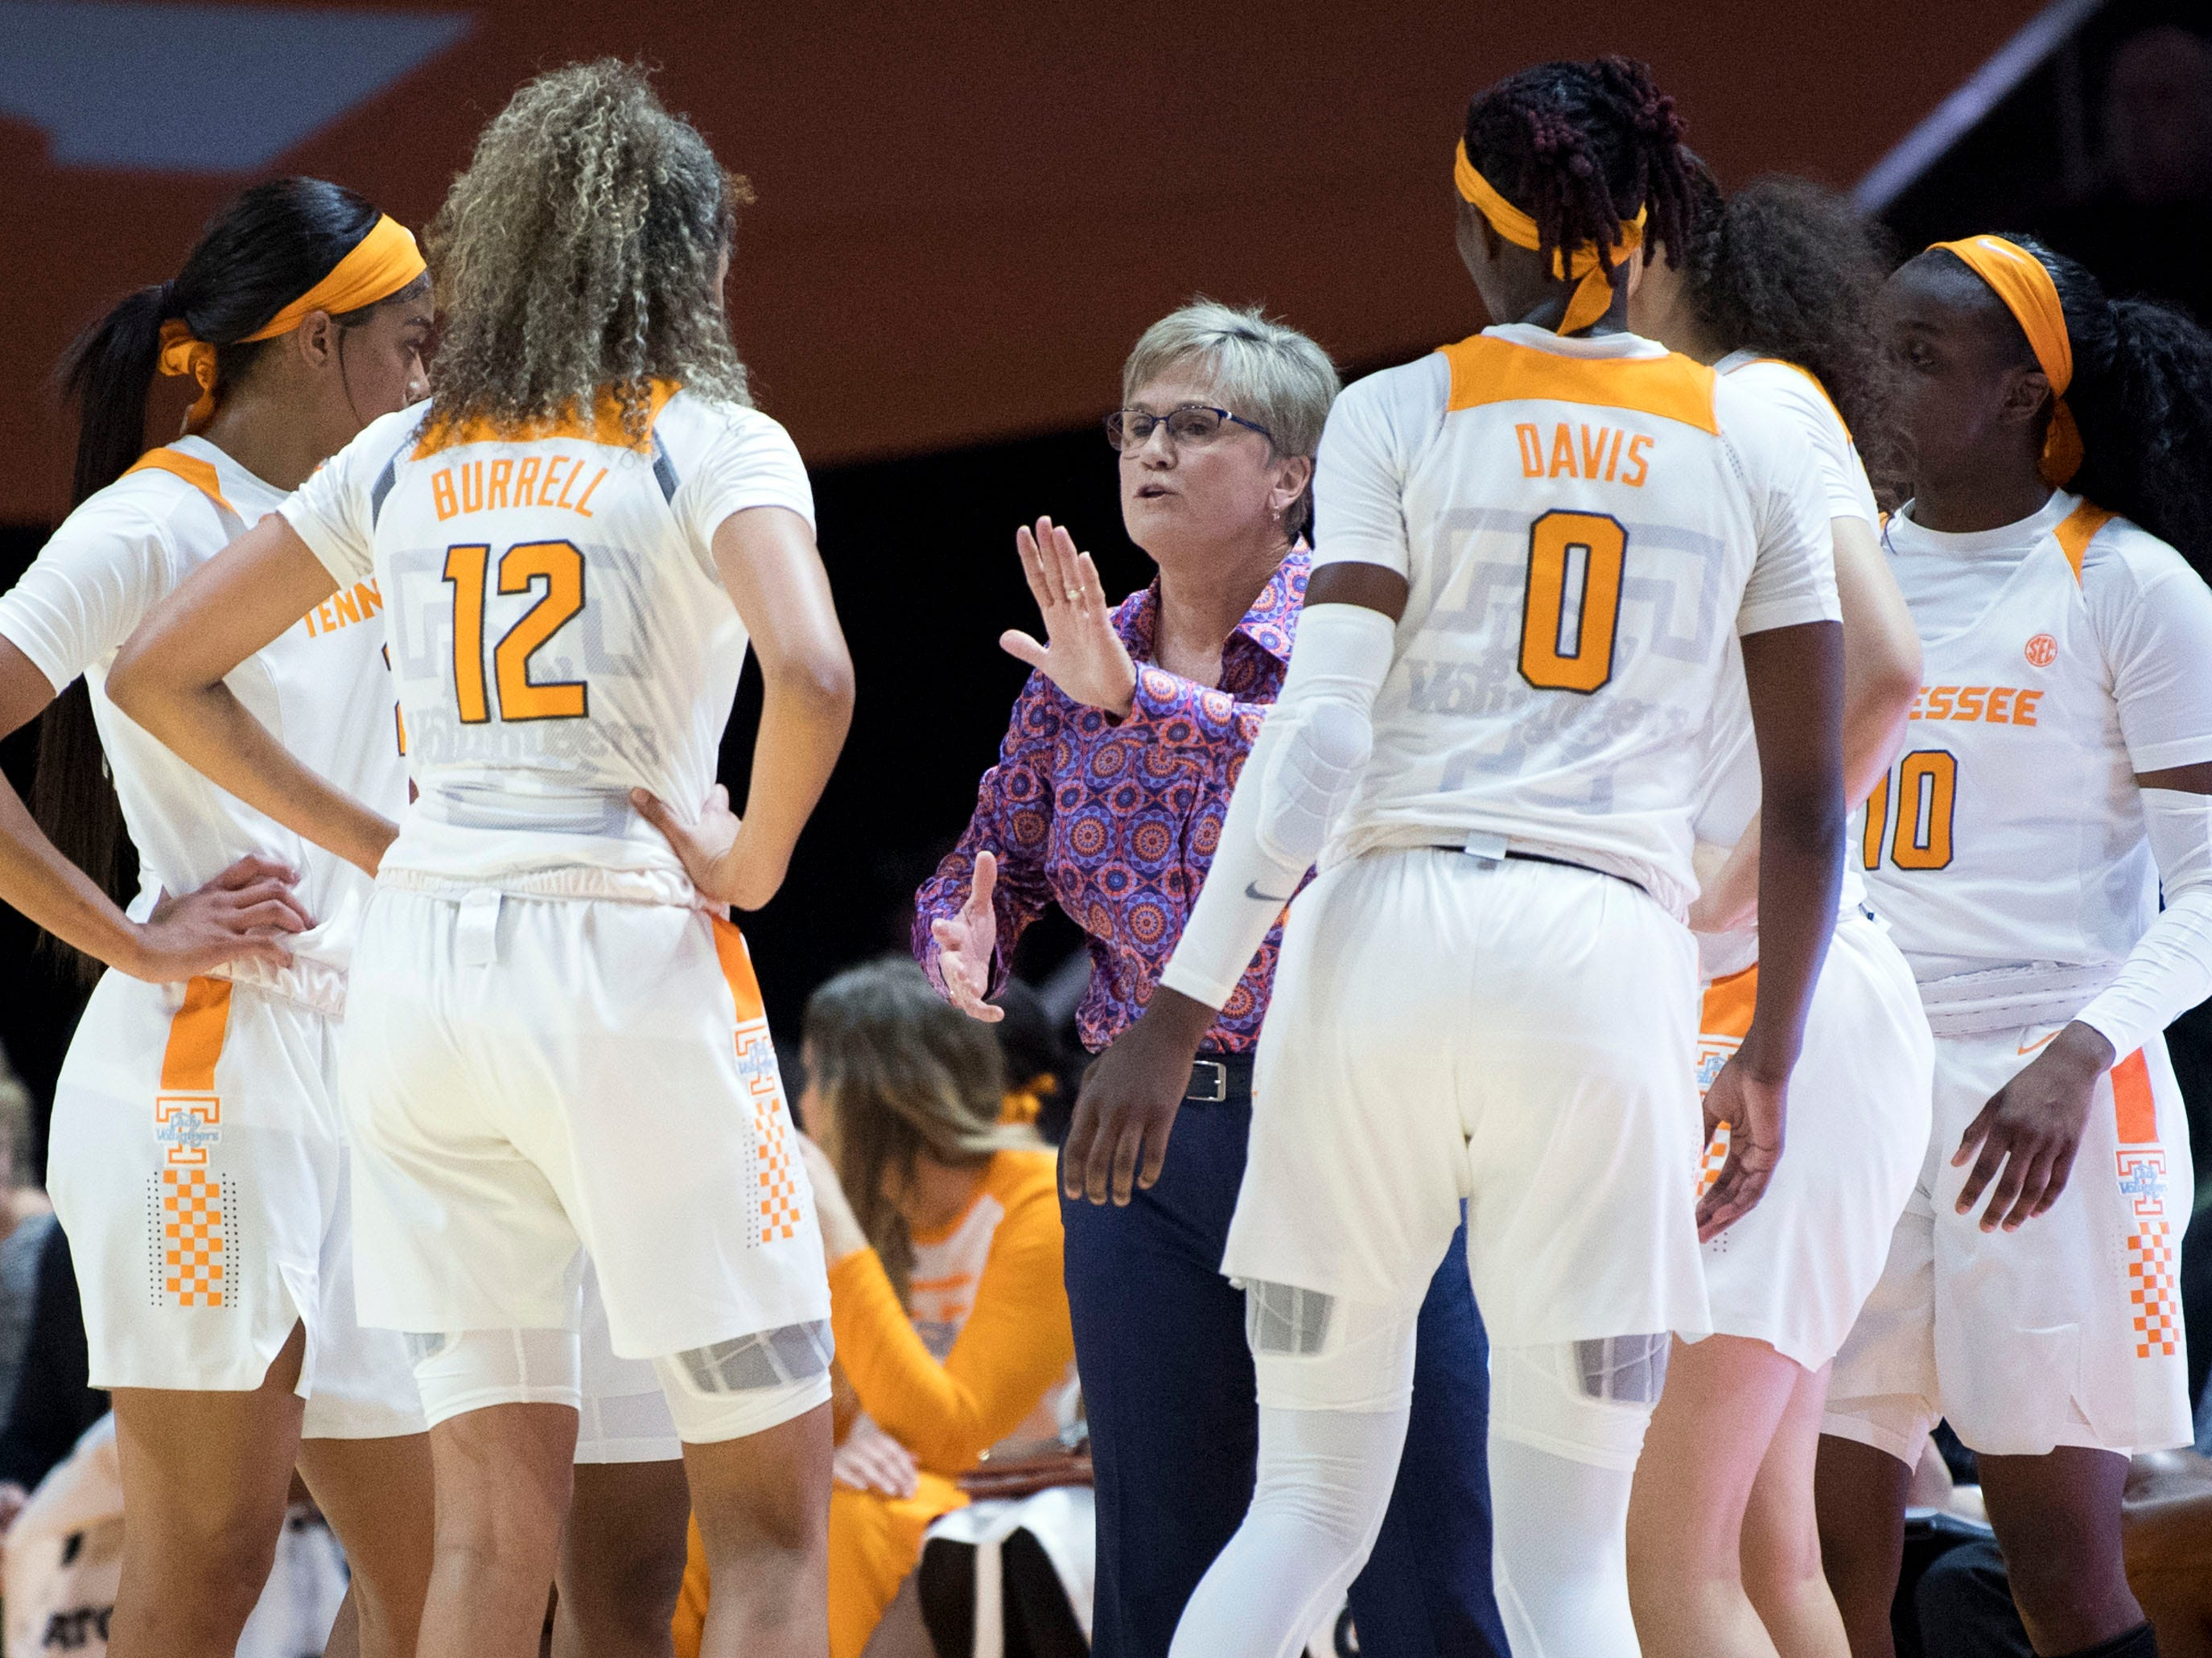 Tennessee women's basketball coach Holly Warlick walks with her team during the game against Kentucky on Thursday, January 10, 2019.